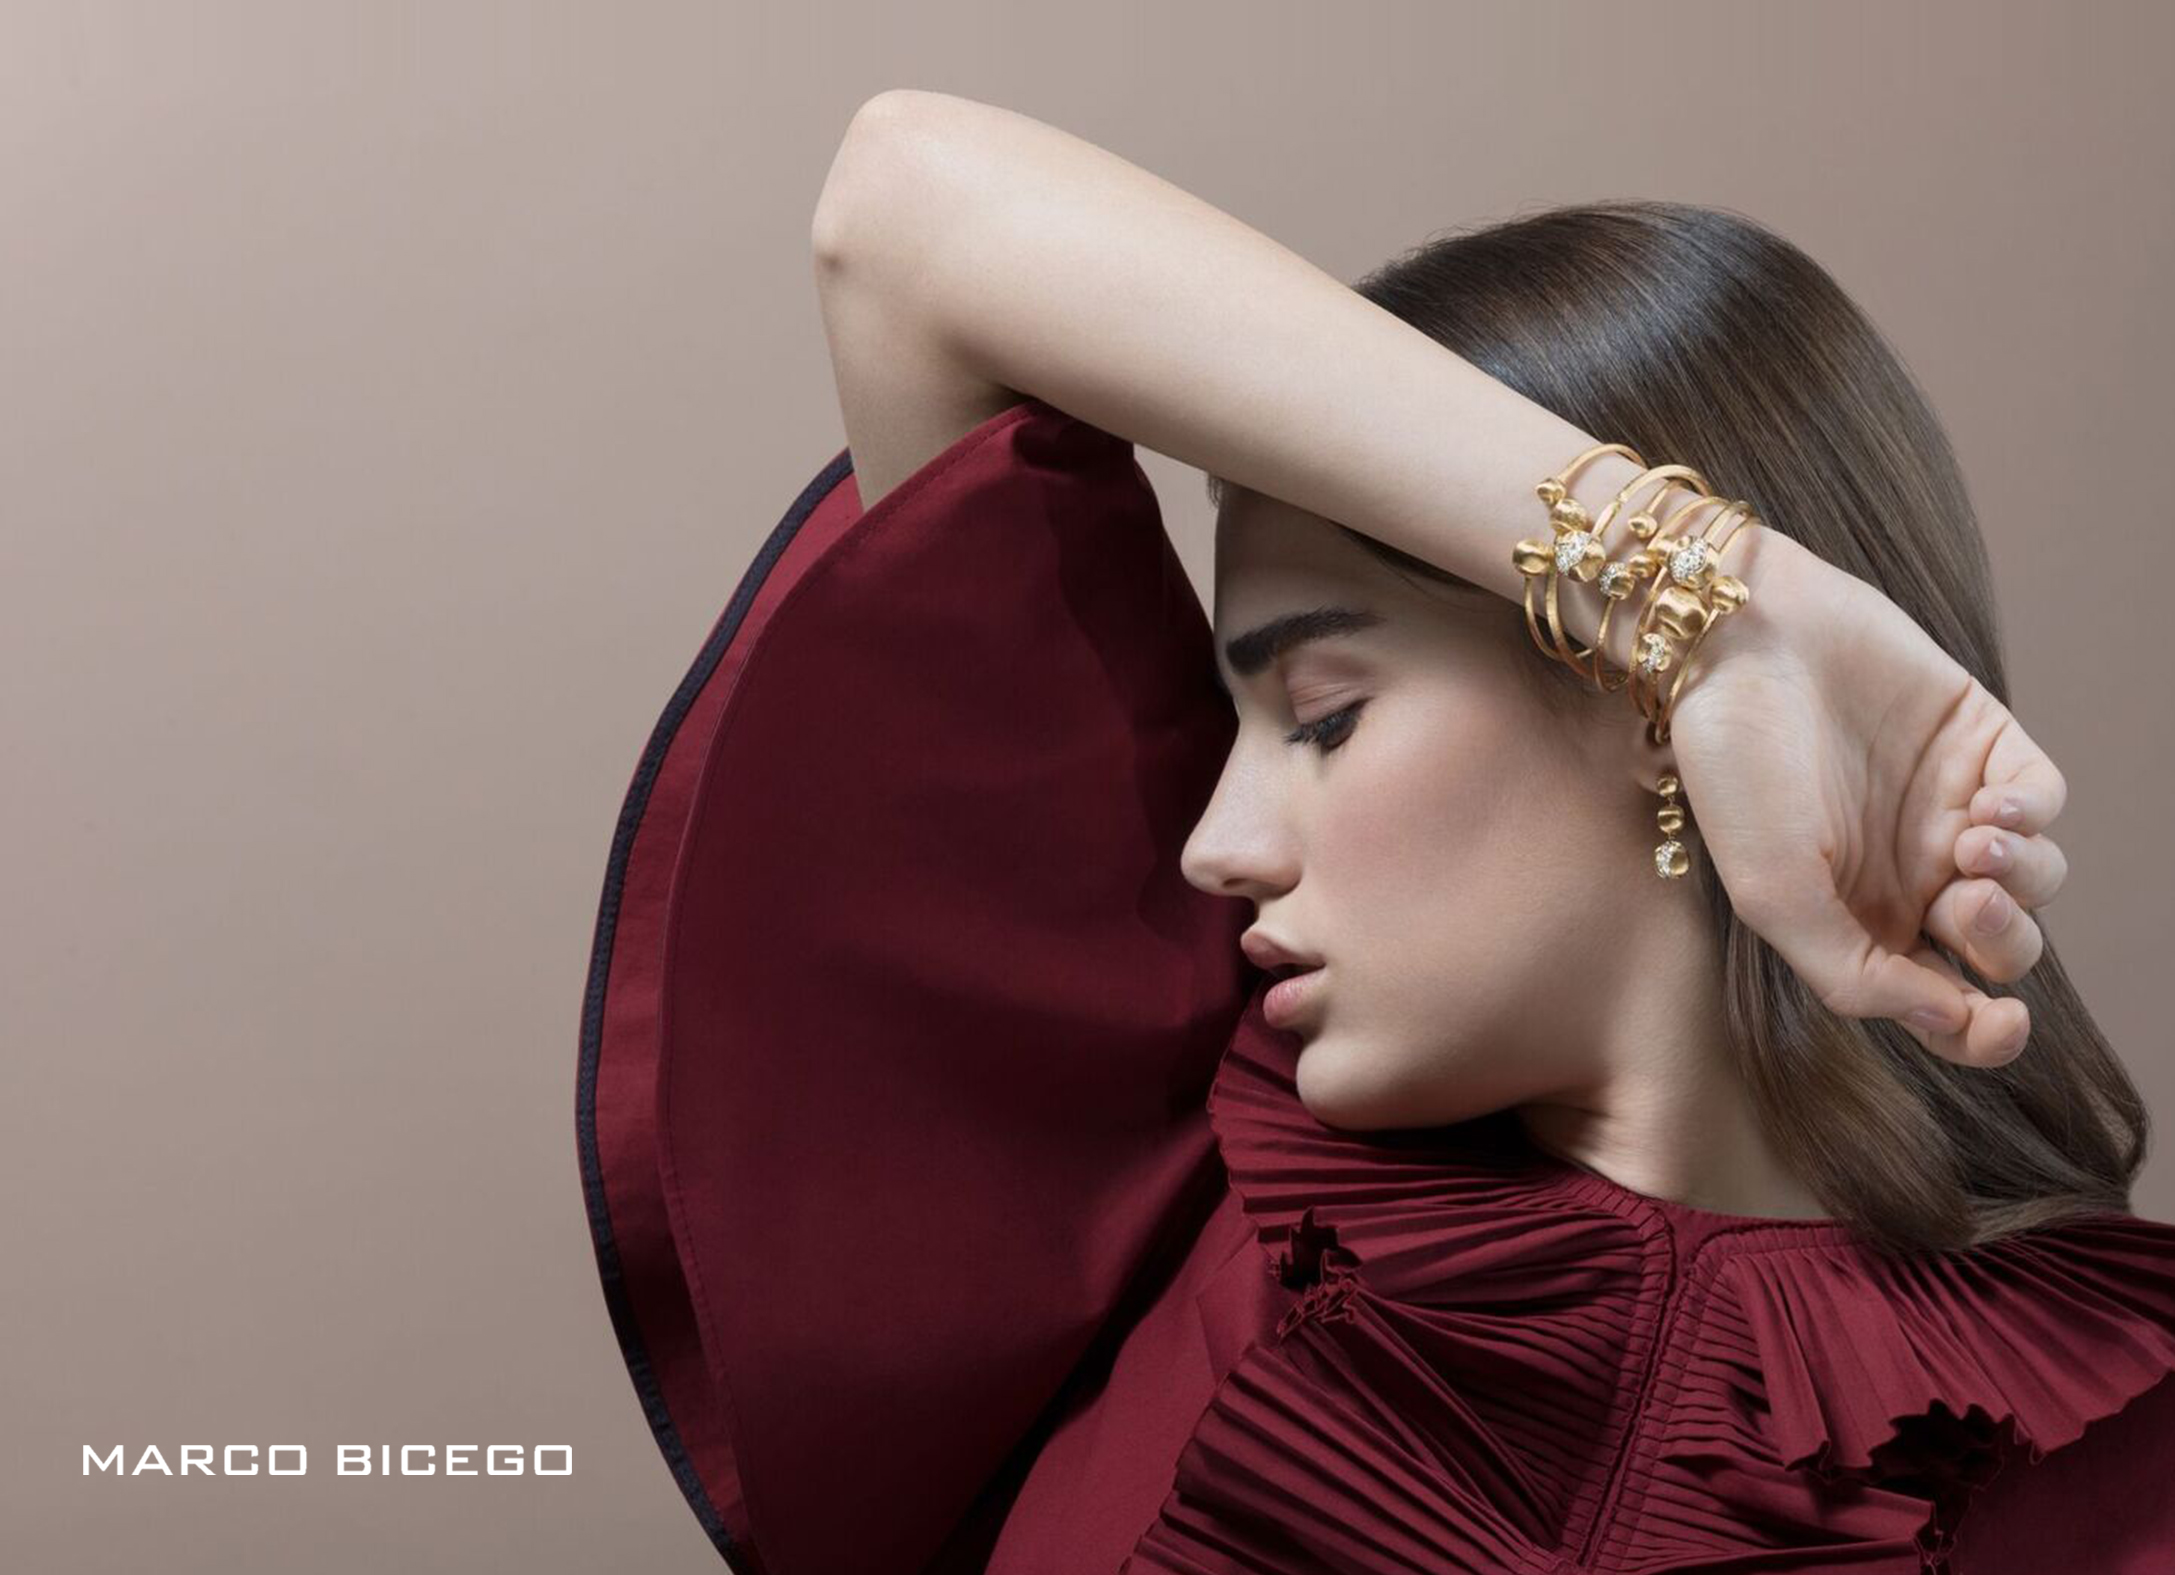 marco bicego front 1.jpg